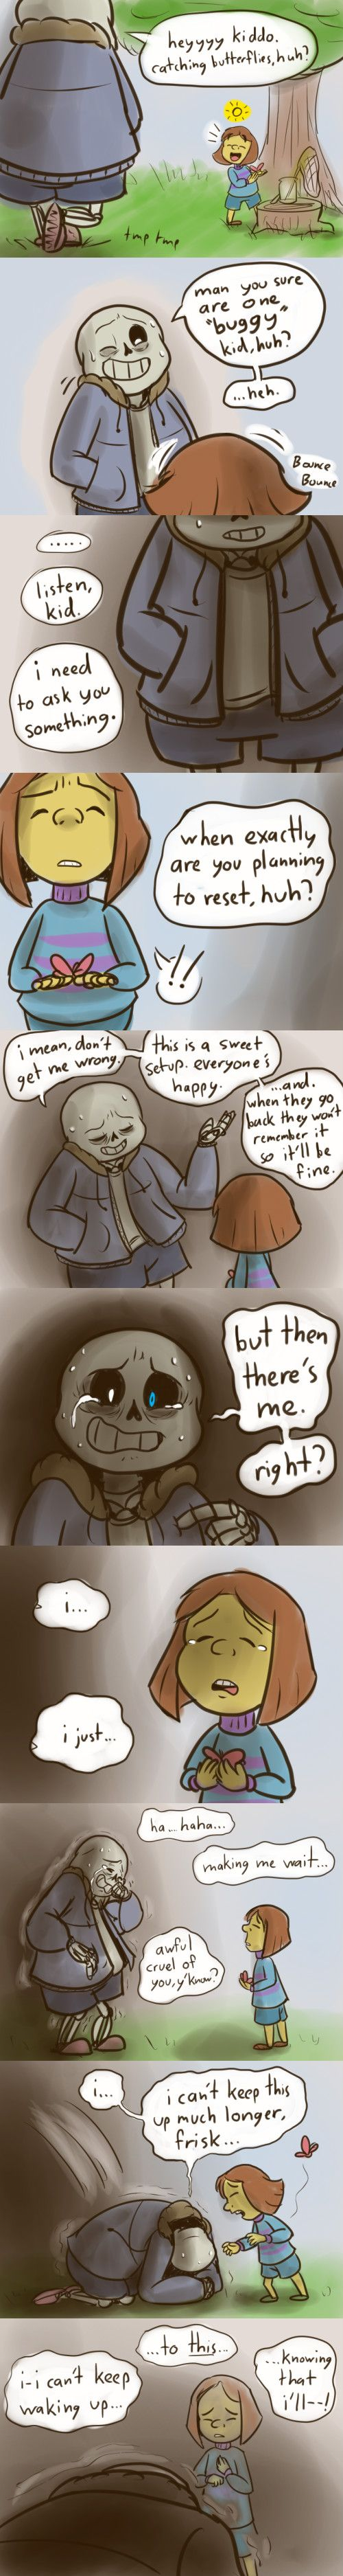 Reset - Sans and Frisk - comic (2/3) - http://nintendonut1.tumblr.com/post/132587878628/reset